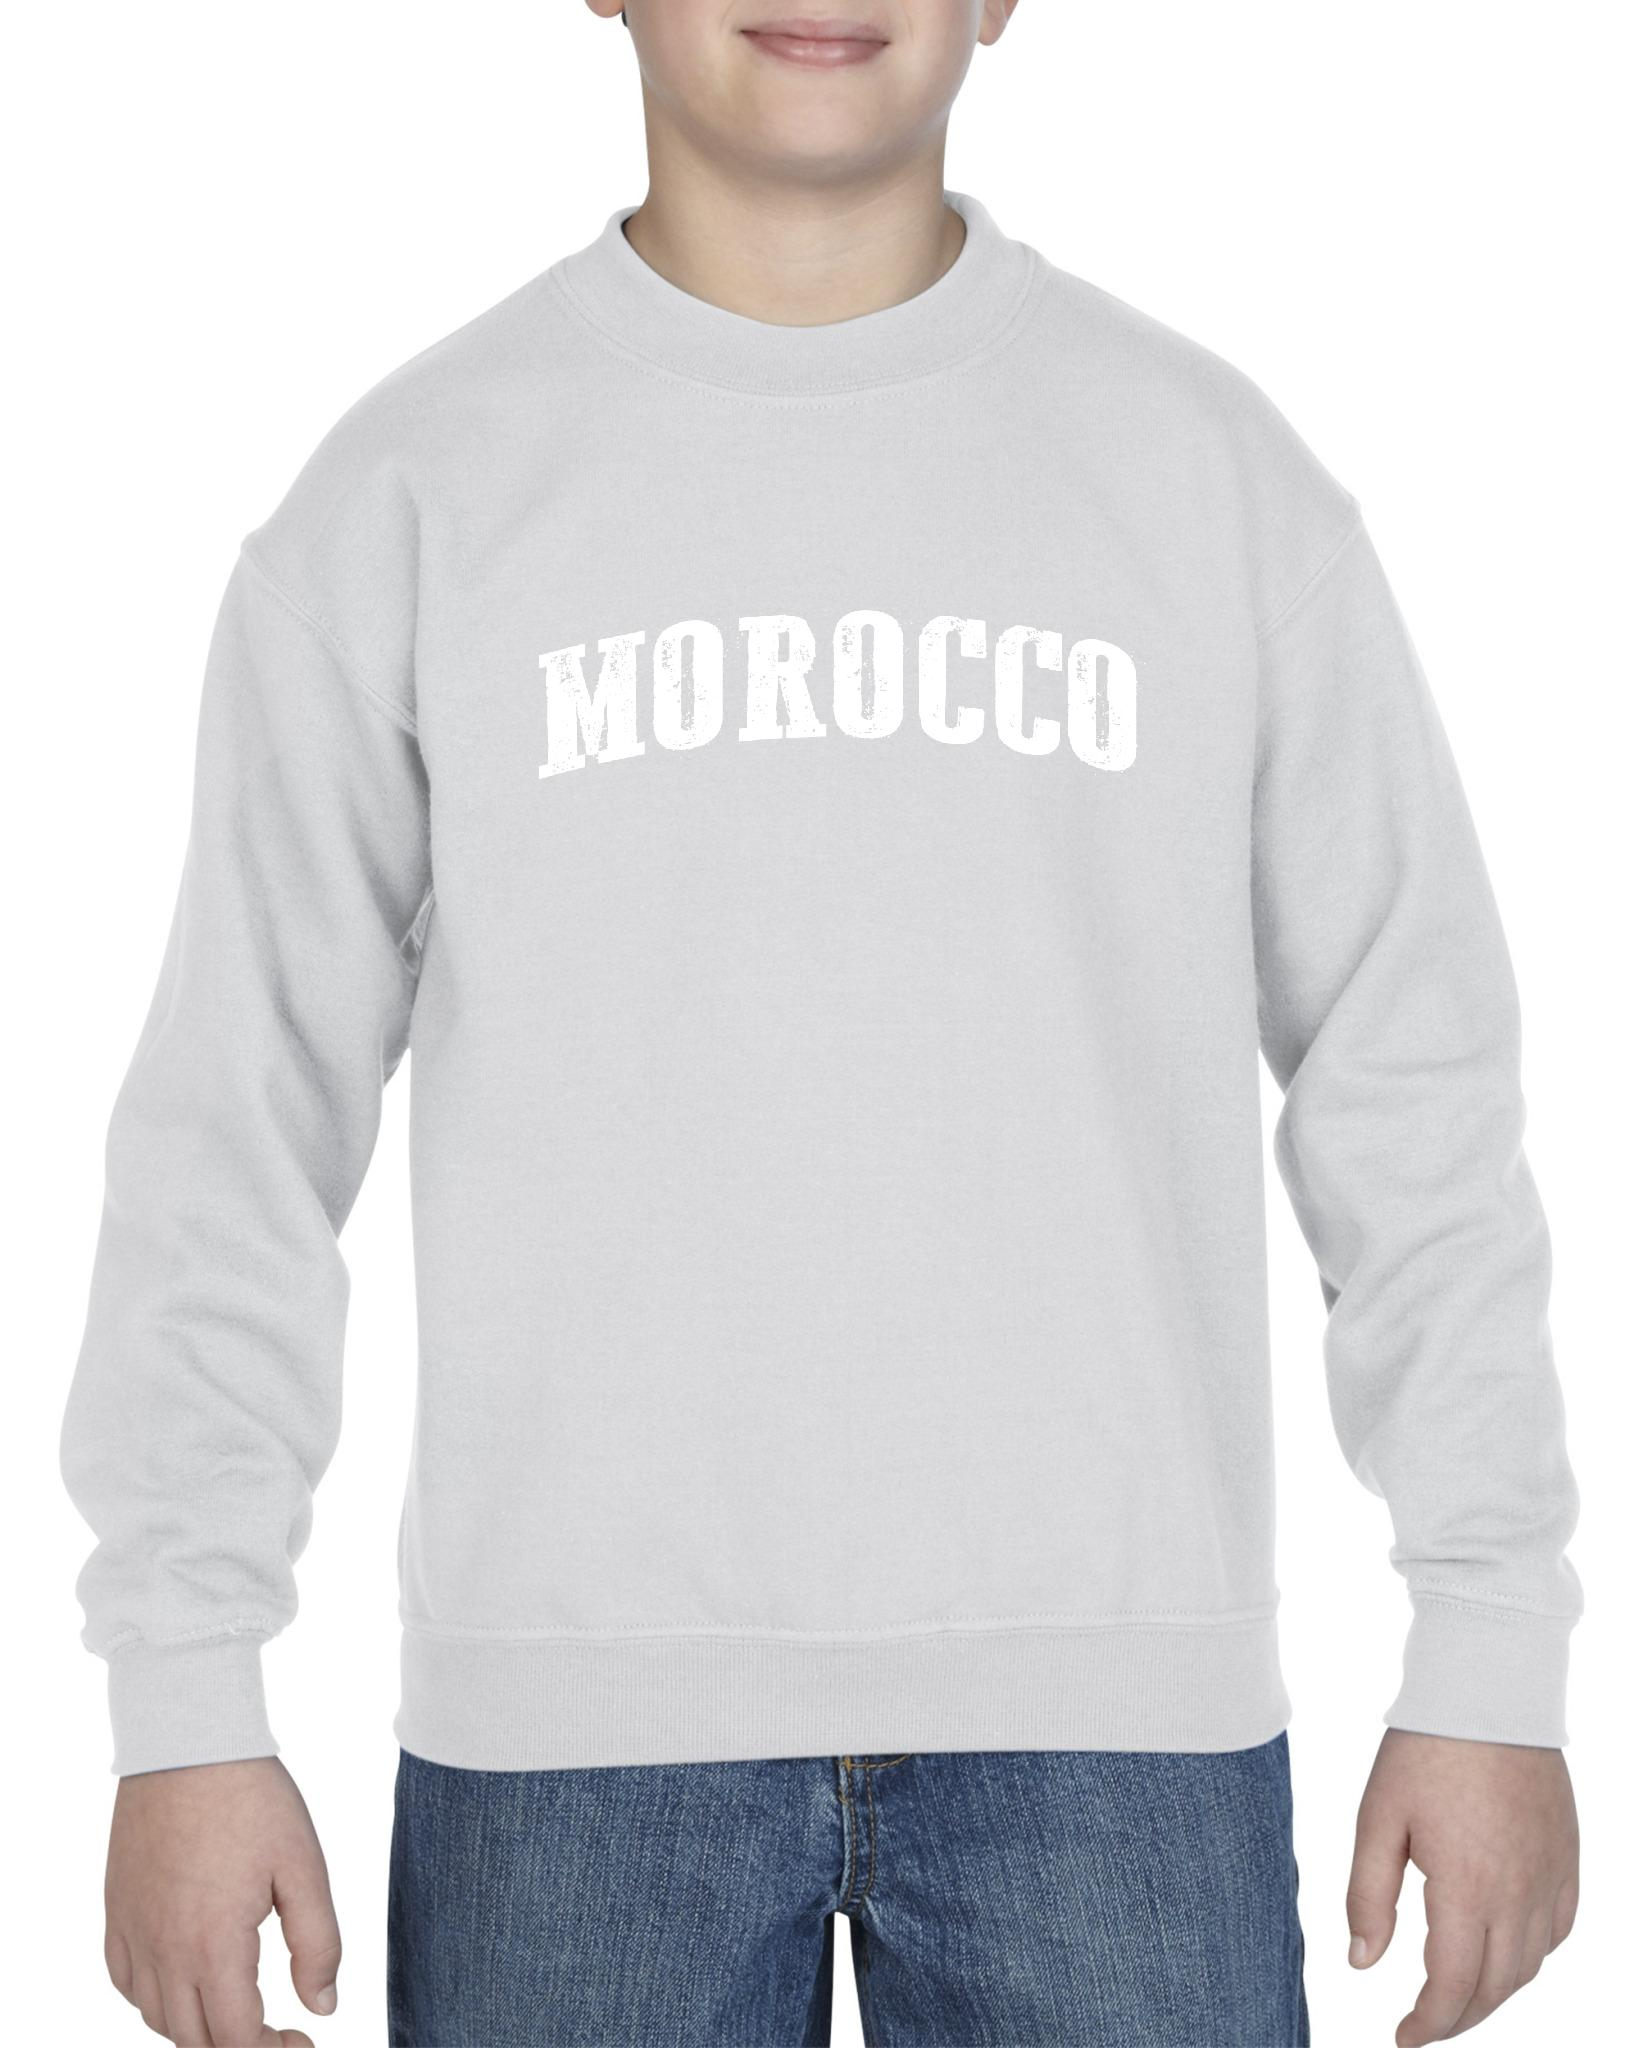 Morocco Morocco Unisex Youth Kids Crewneck Sweater Clothing